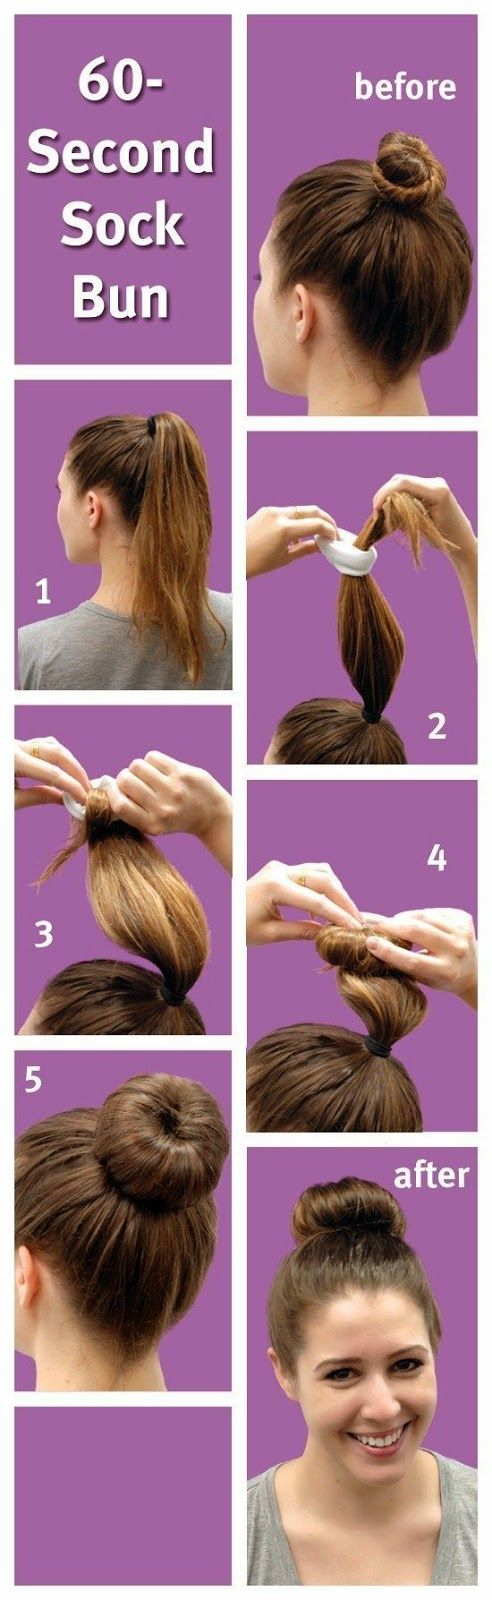 60-Second Sock Bun Military bun for long/thick hair without using a sock - good idea. I have been doing buns for worki...